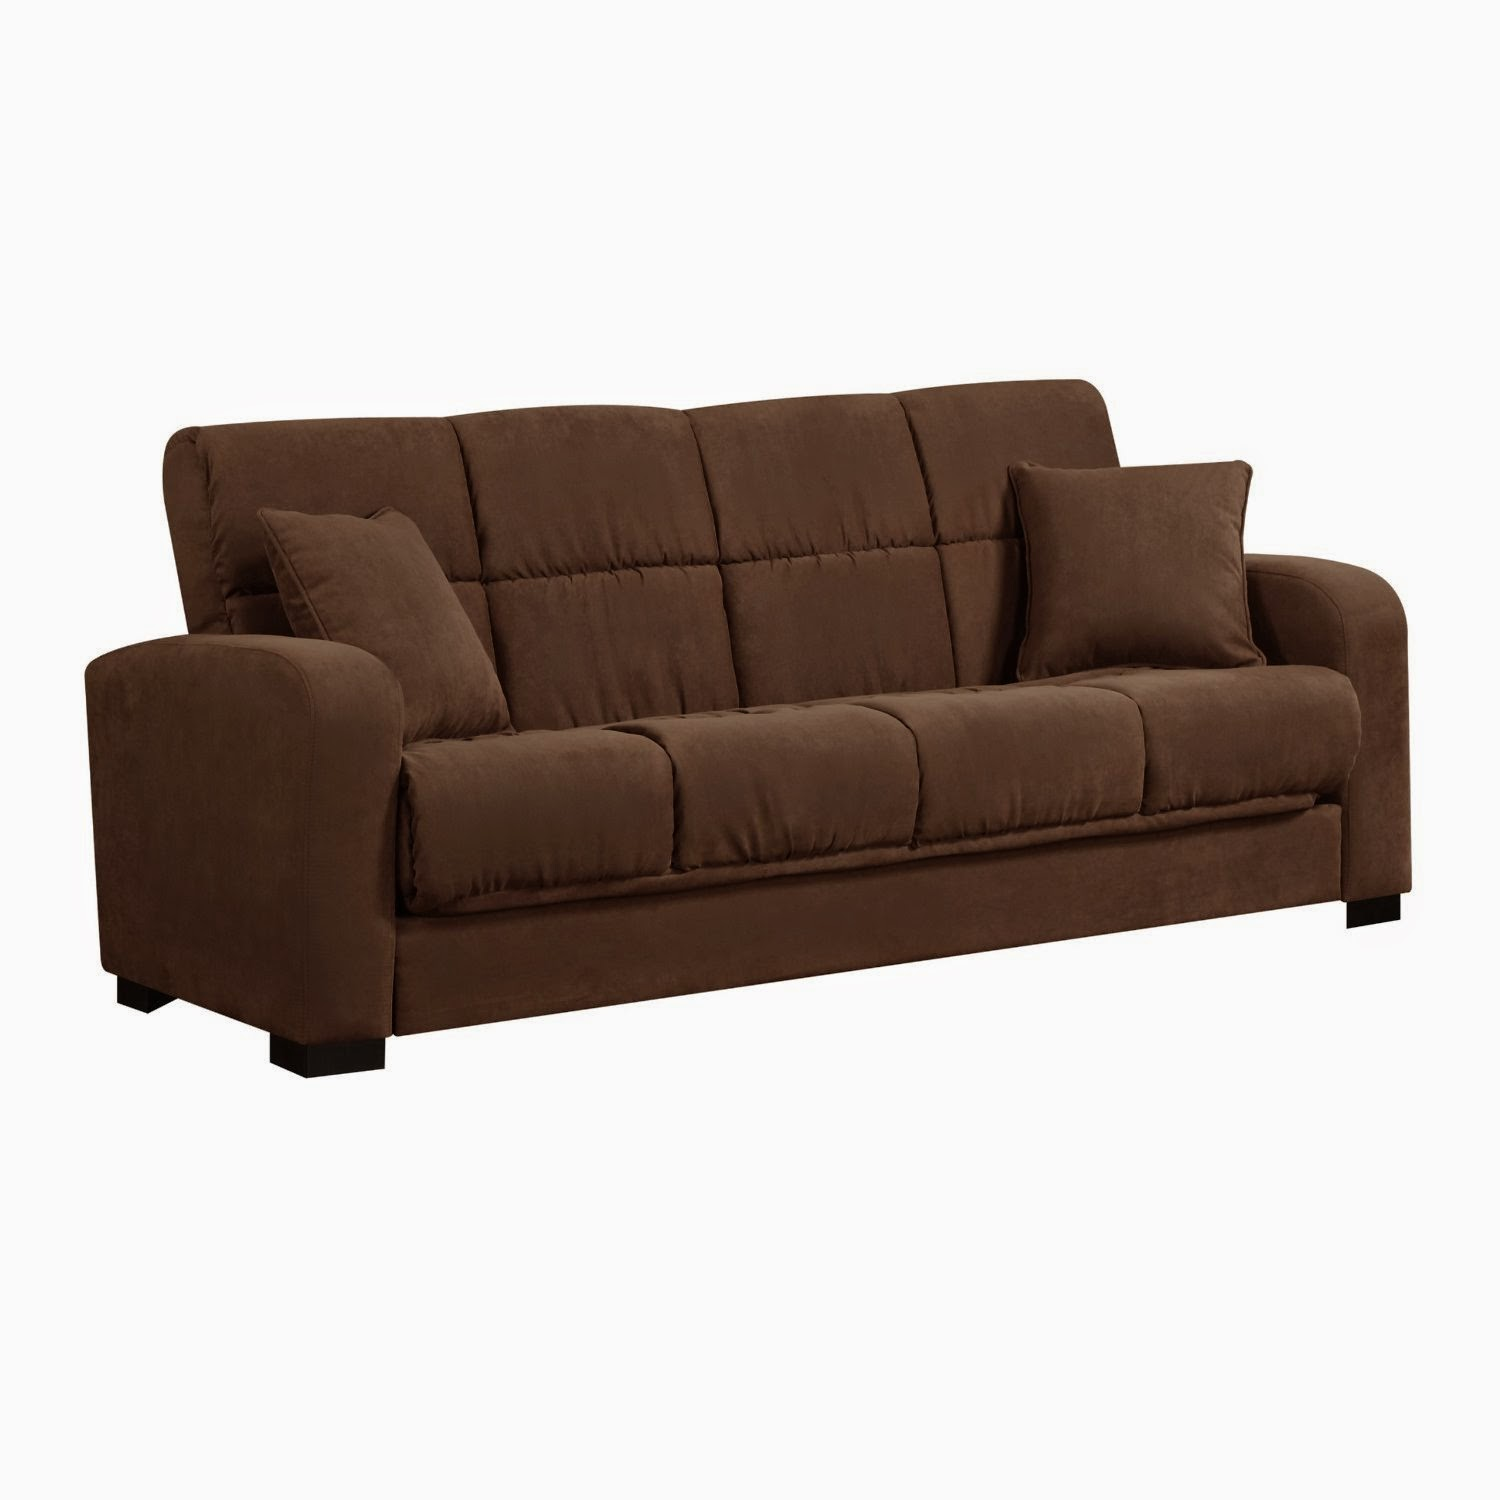 Sofa for sale for Beds for sale